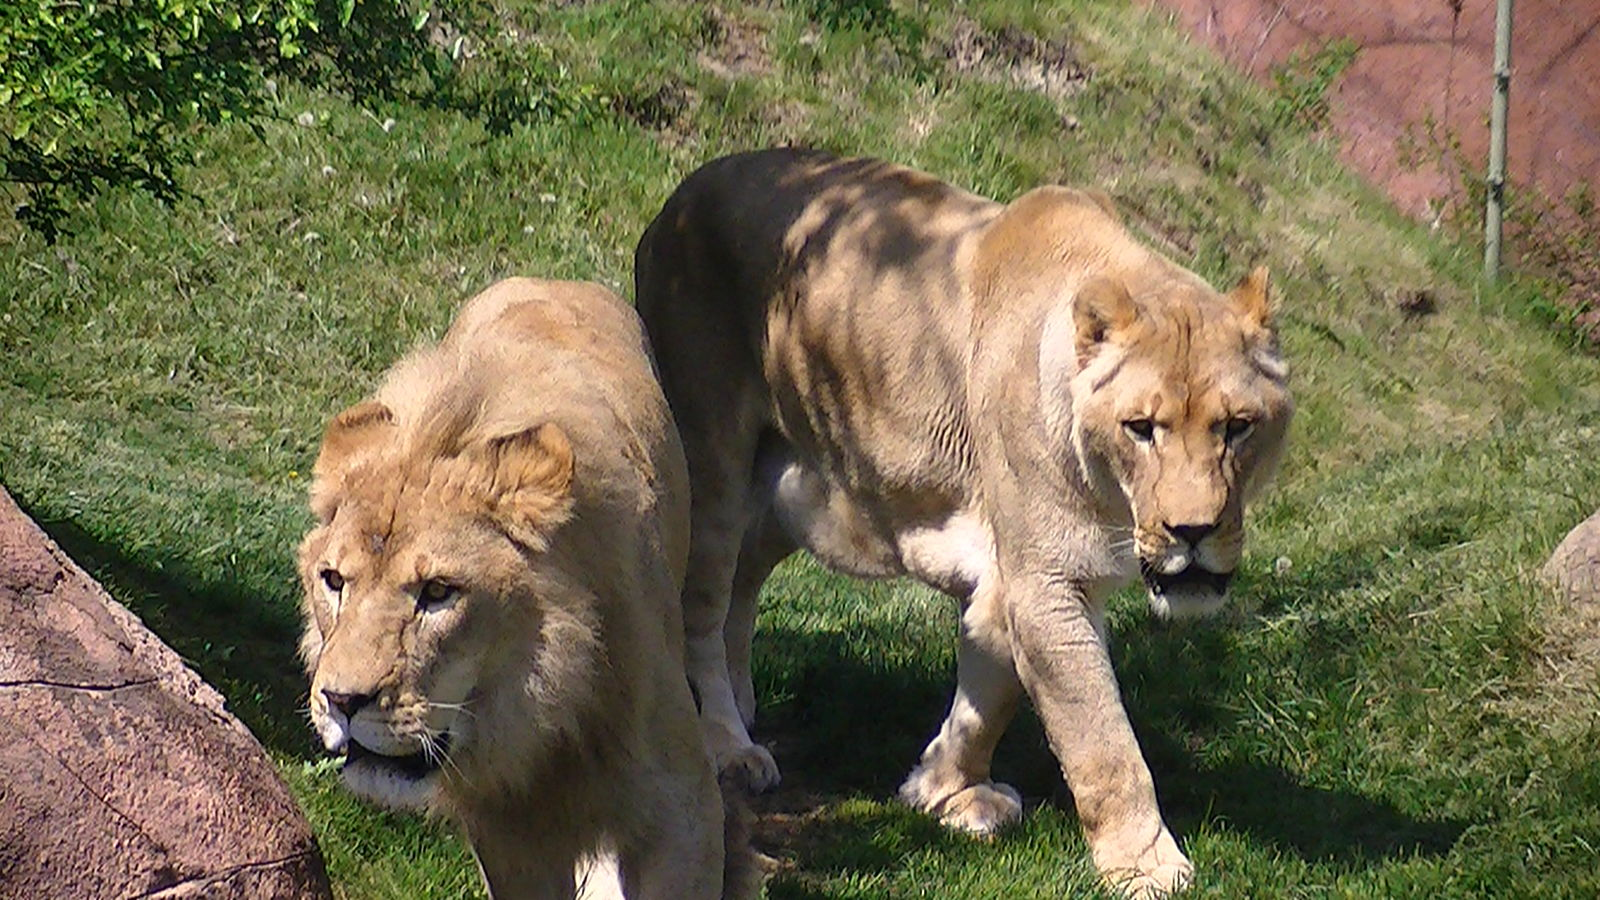 Lions at the Toronto Zoo